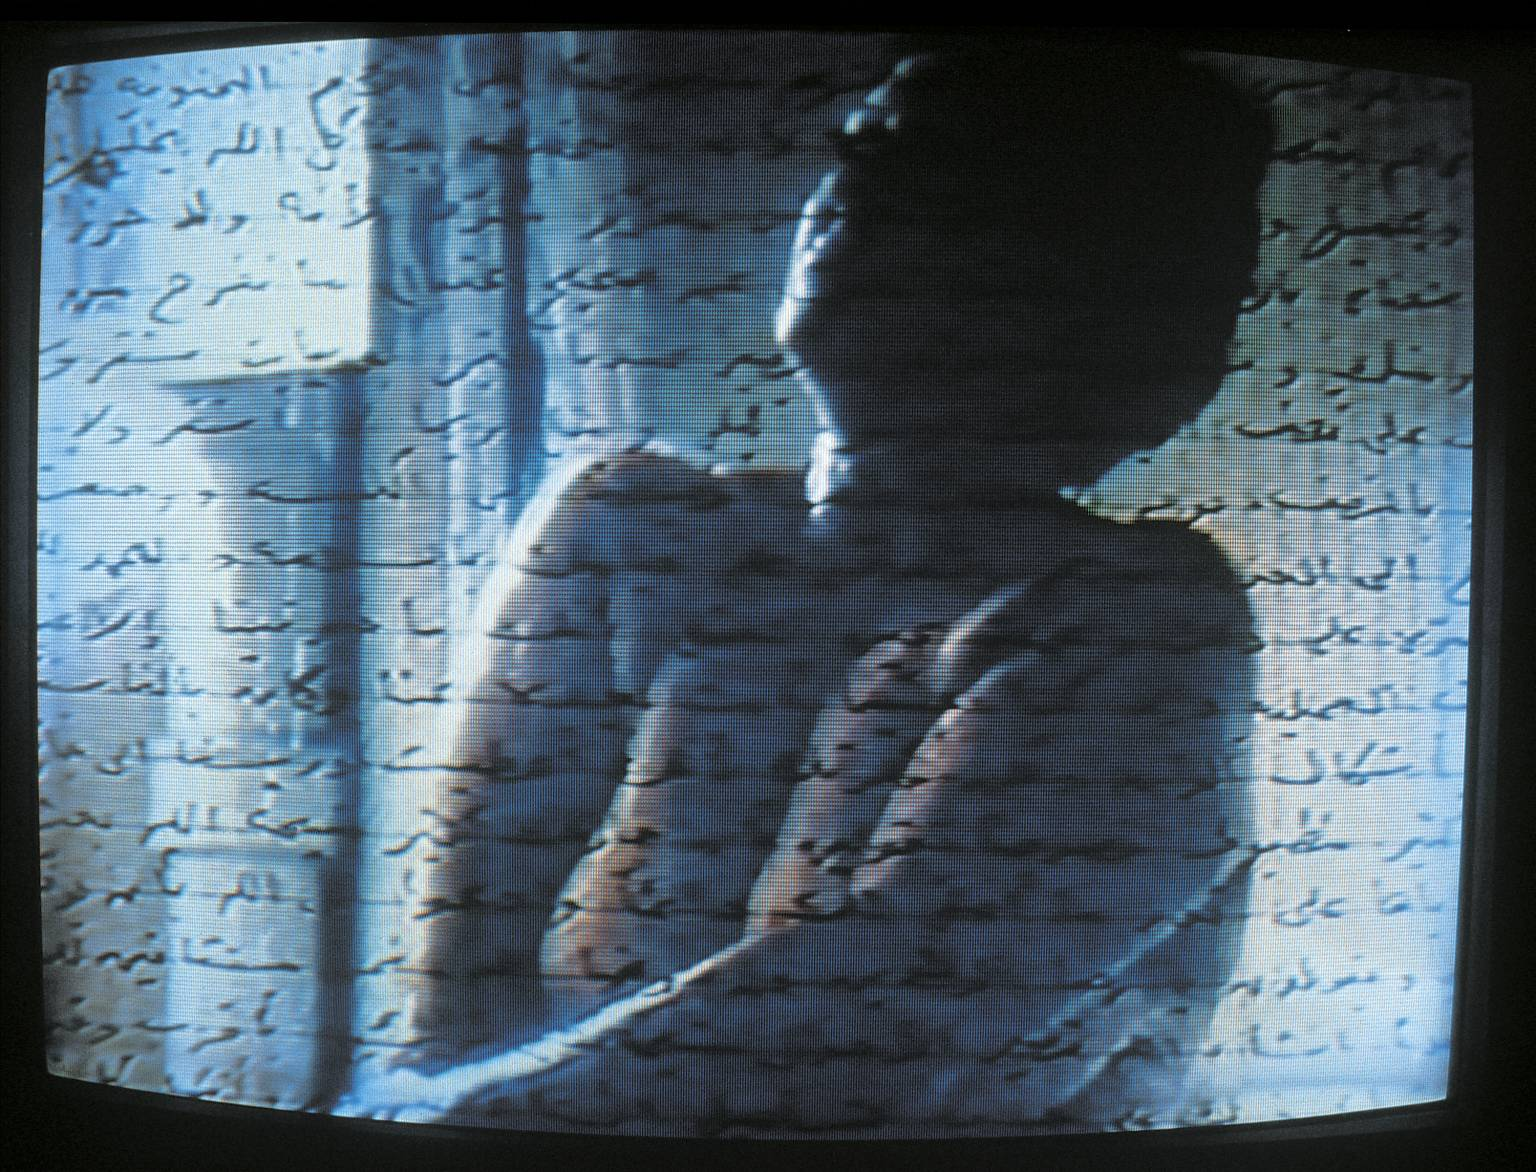 منى حاطوم، Measures of Distance، 1988